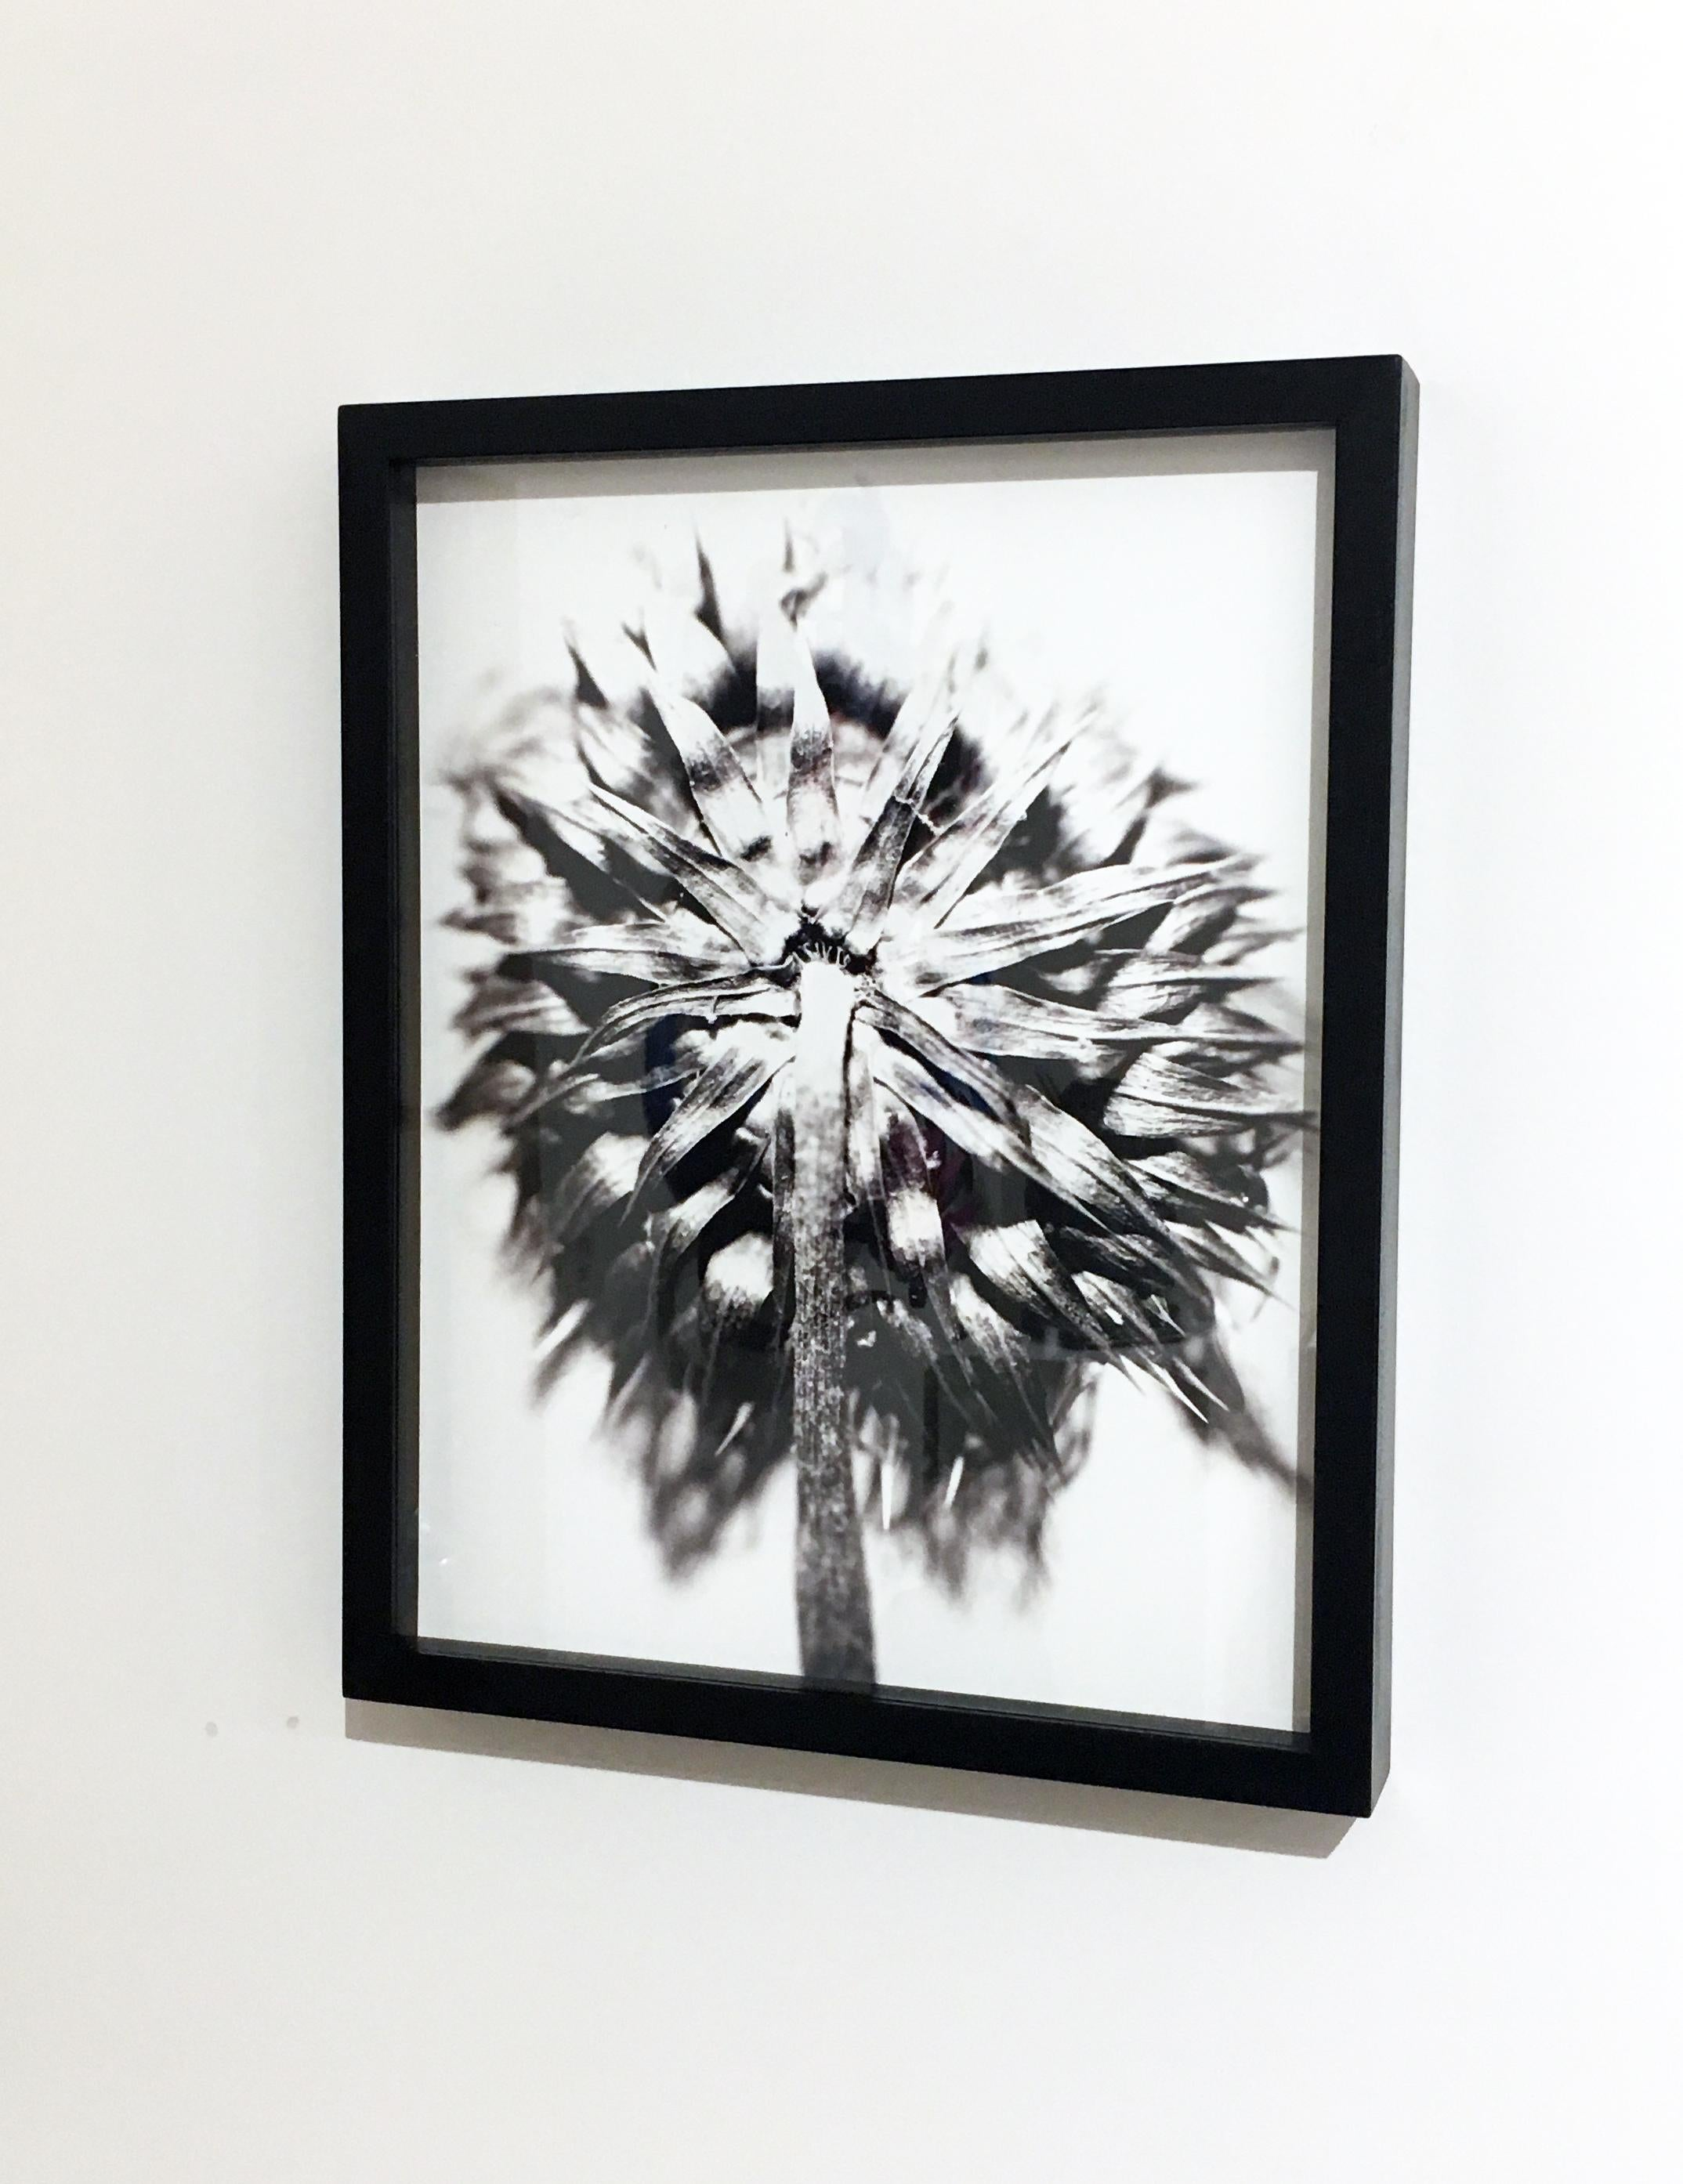 Thistle 22, Framed Black and White Digital Print Photography